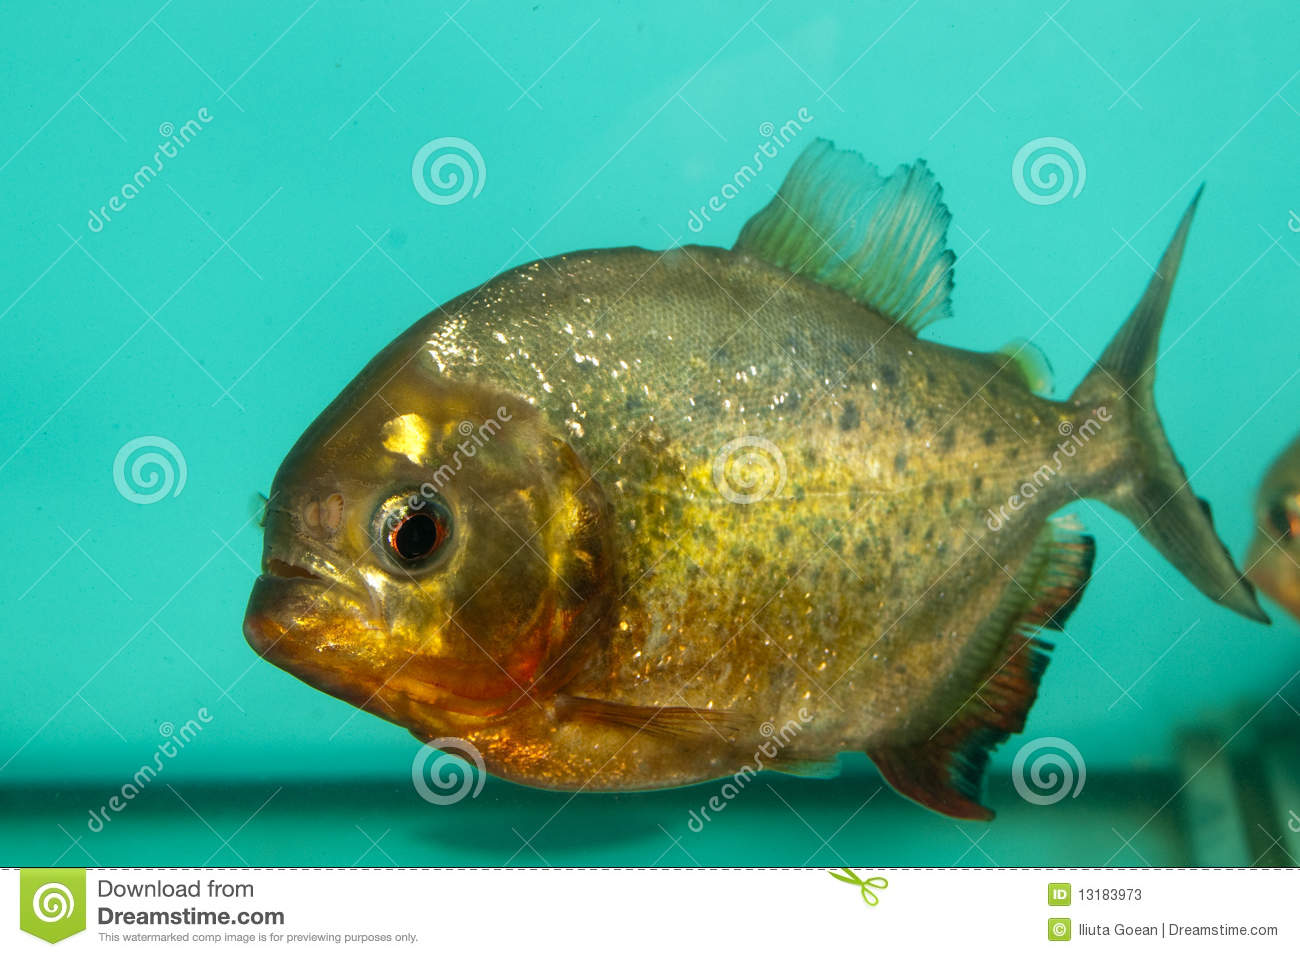 Piranha Fish In Aquarium Stock Photos - Image: 13183973